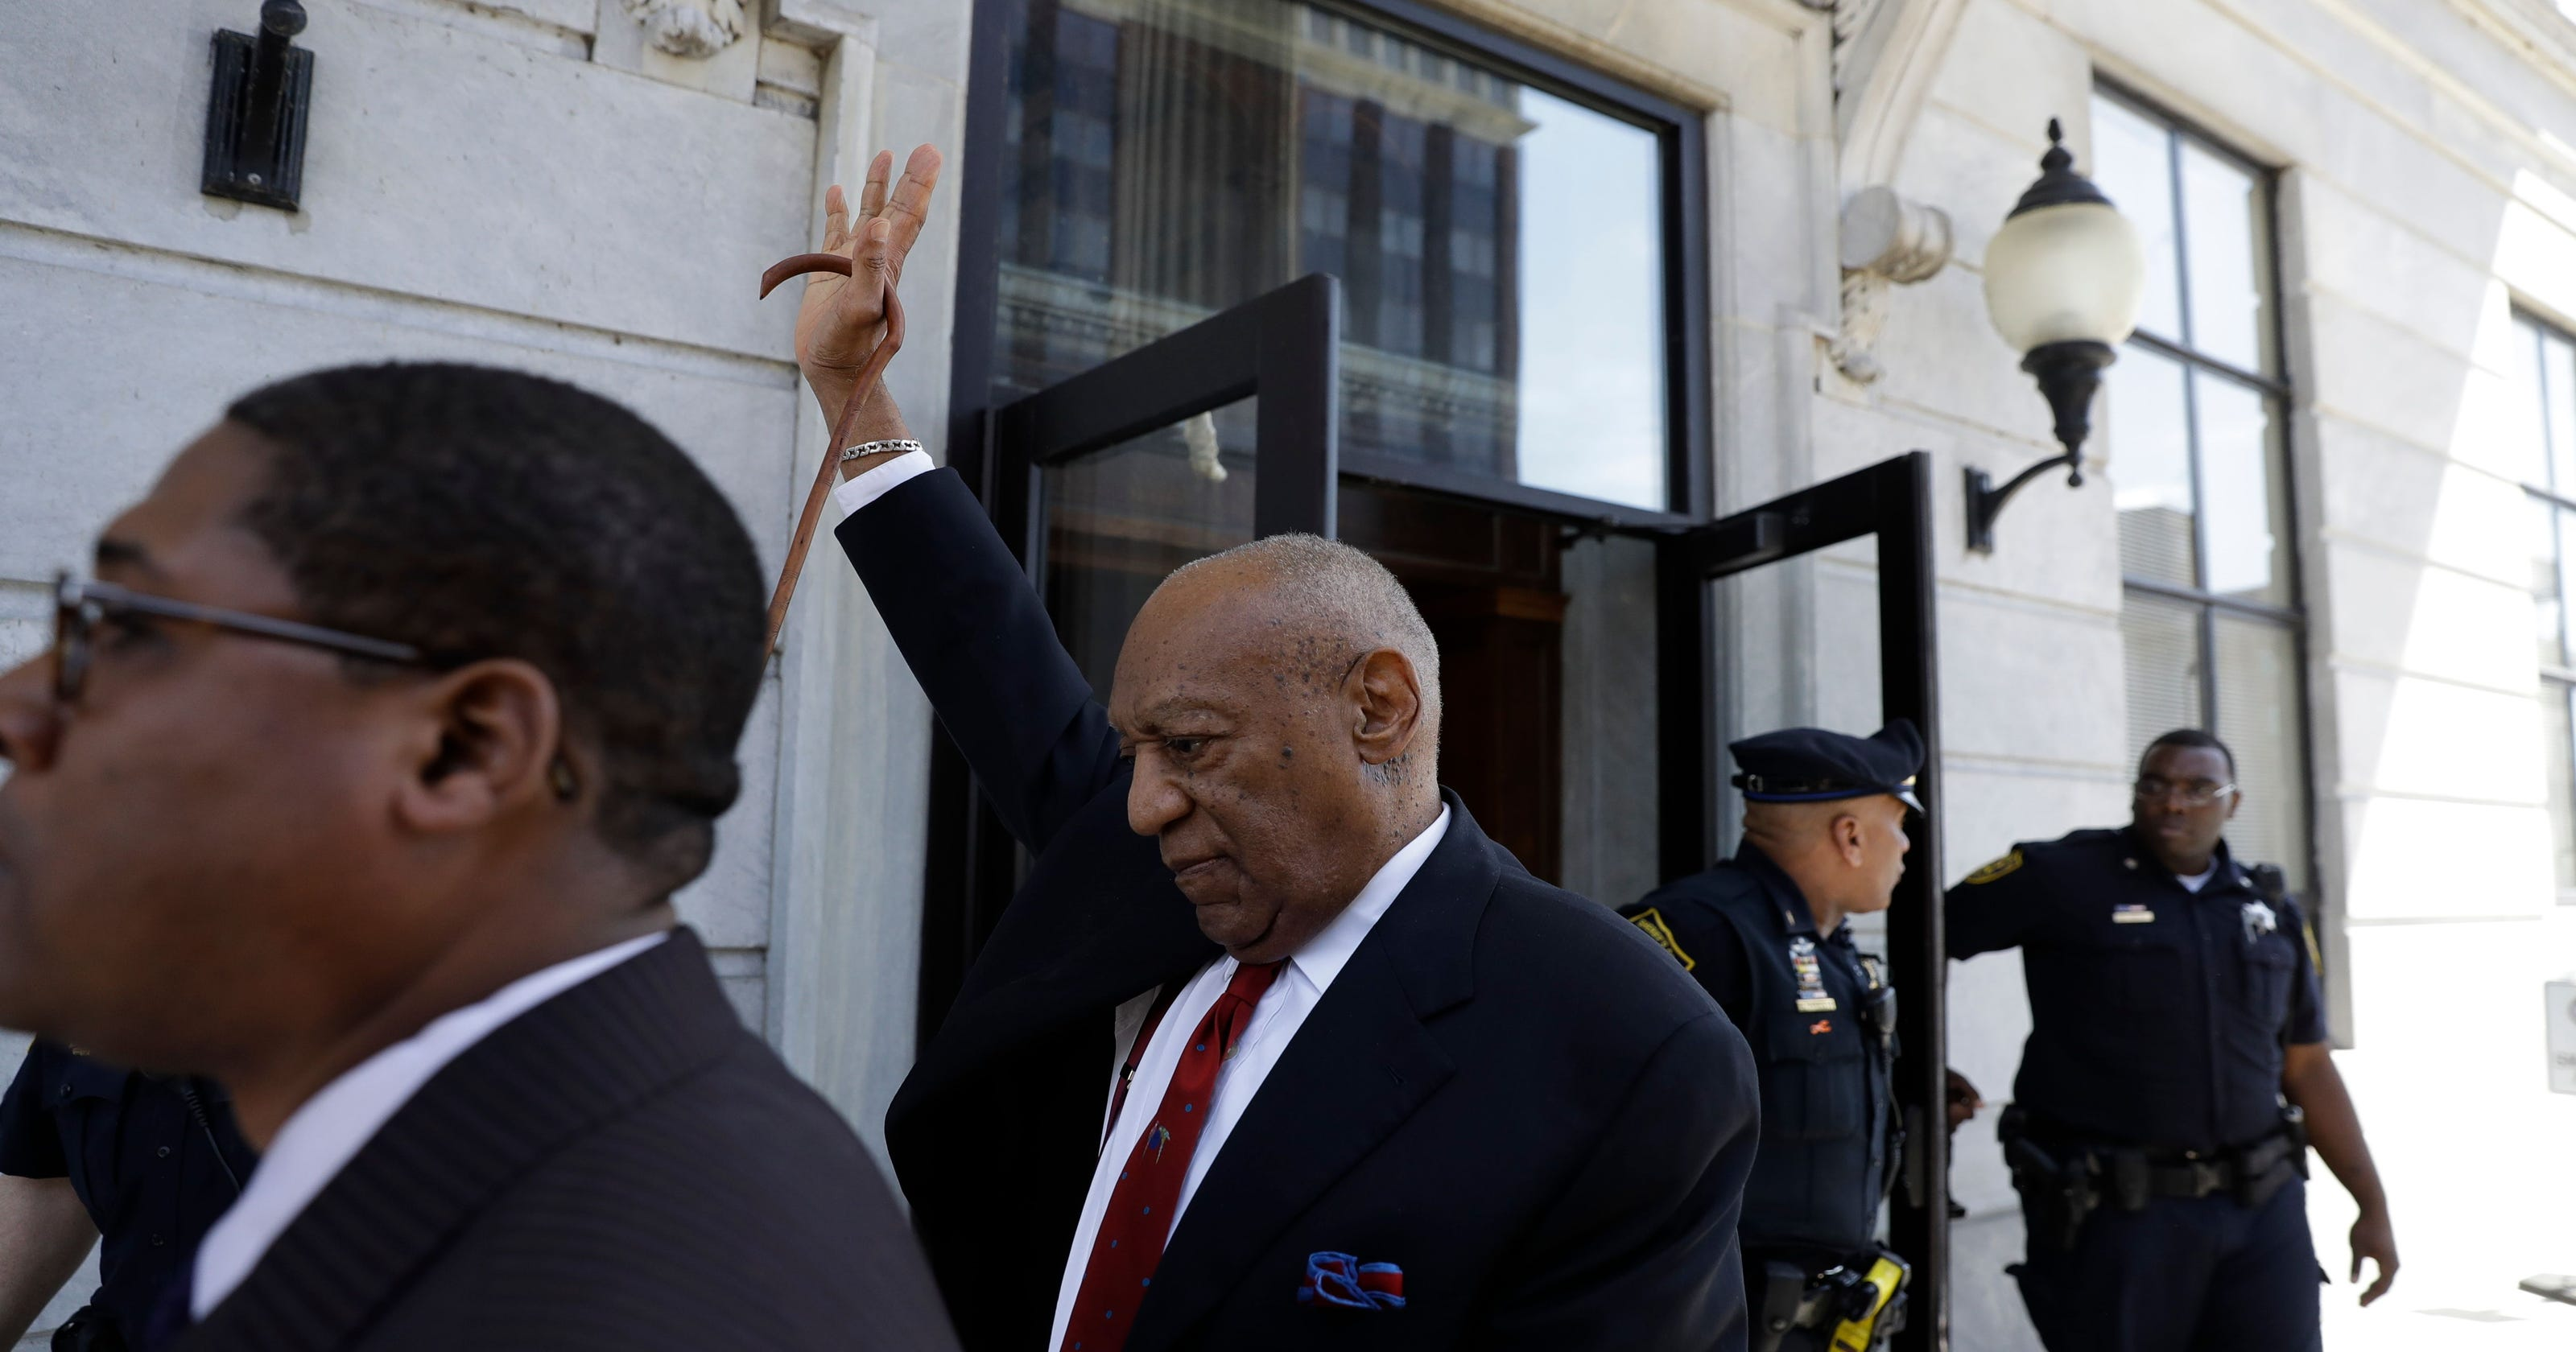 Bill Cosby's conviction for raping Andrea Constand reshaped